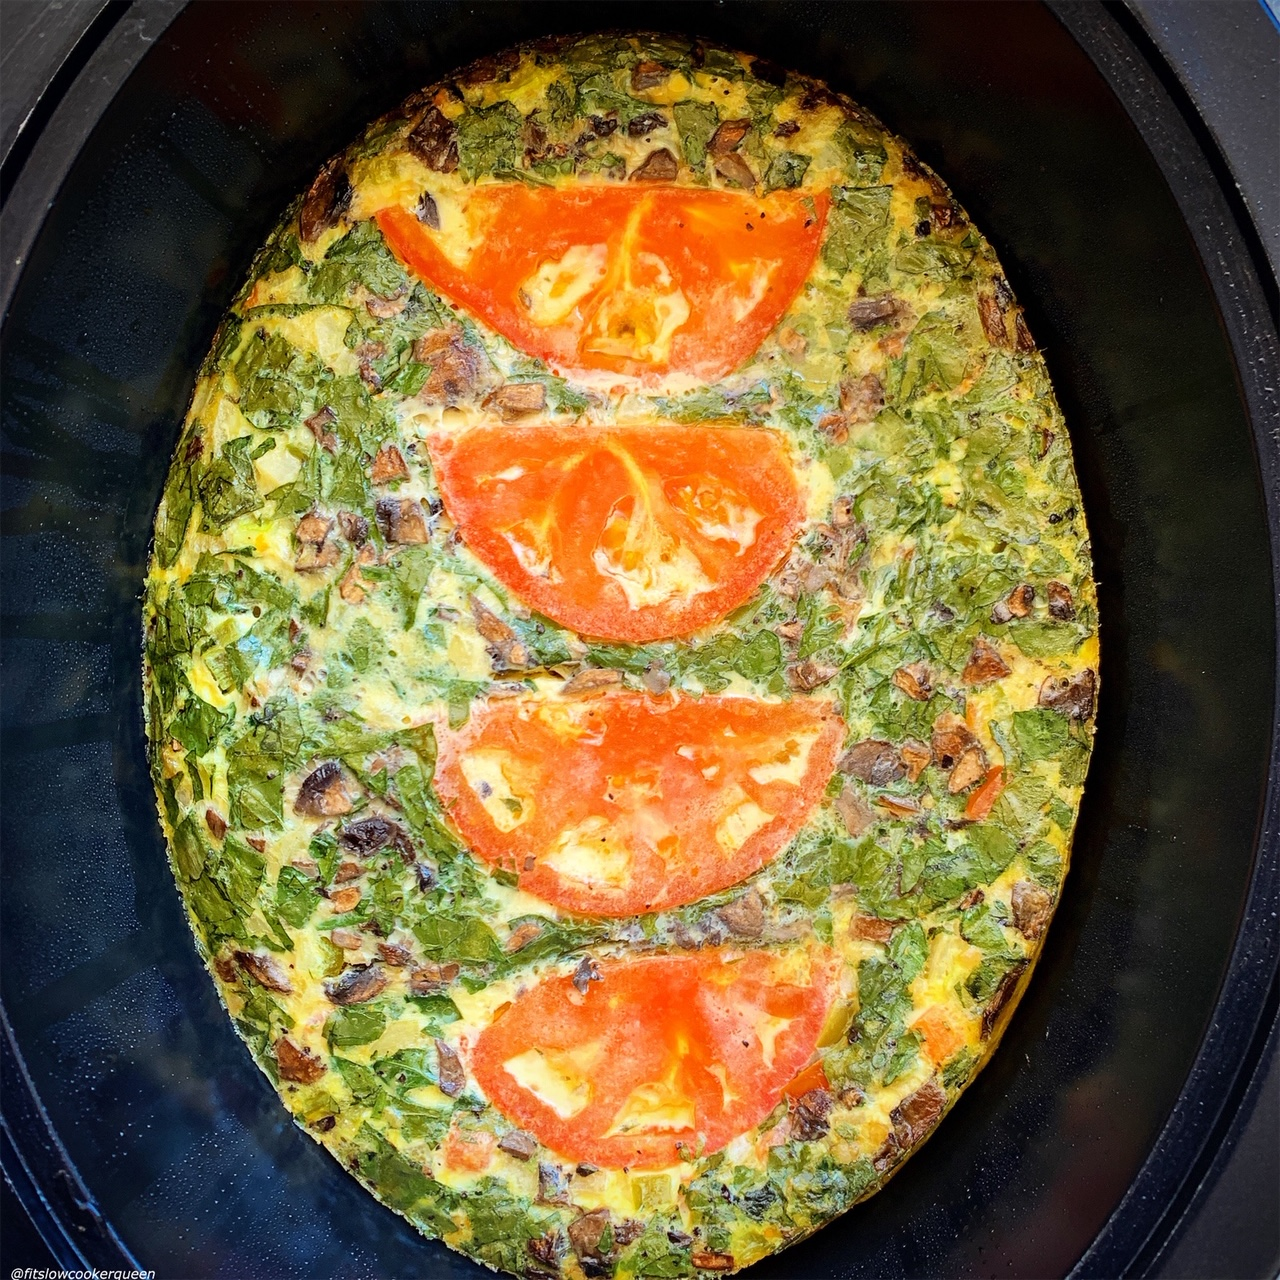 cooked meat & veggie frittata in the slow cooker for {VIDEO} Slow Cooker Meat & Vegetable Frittata (Low-Carb, Paleo, Whole30)